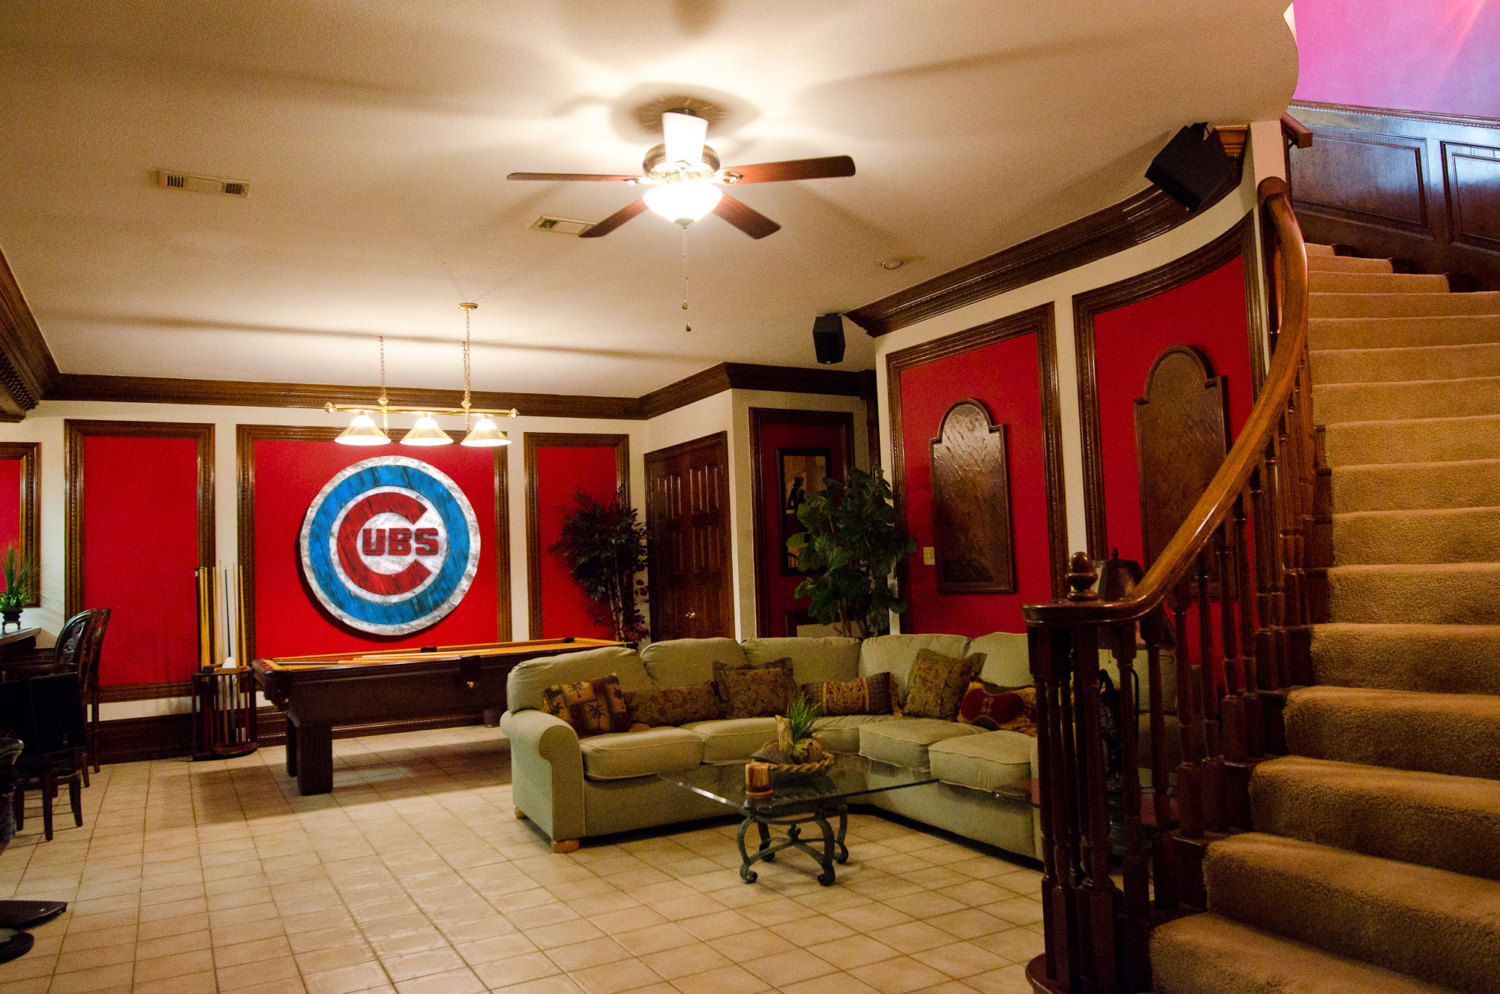 Art Décor: Chicago Cubs Handmade Distressed Wood Sign, Vintage, Art